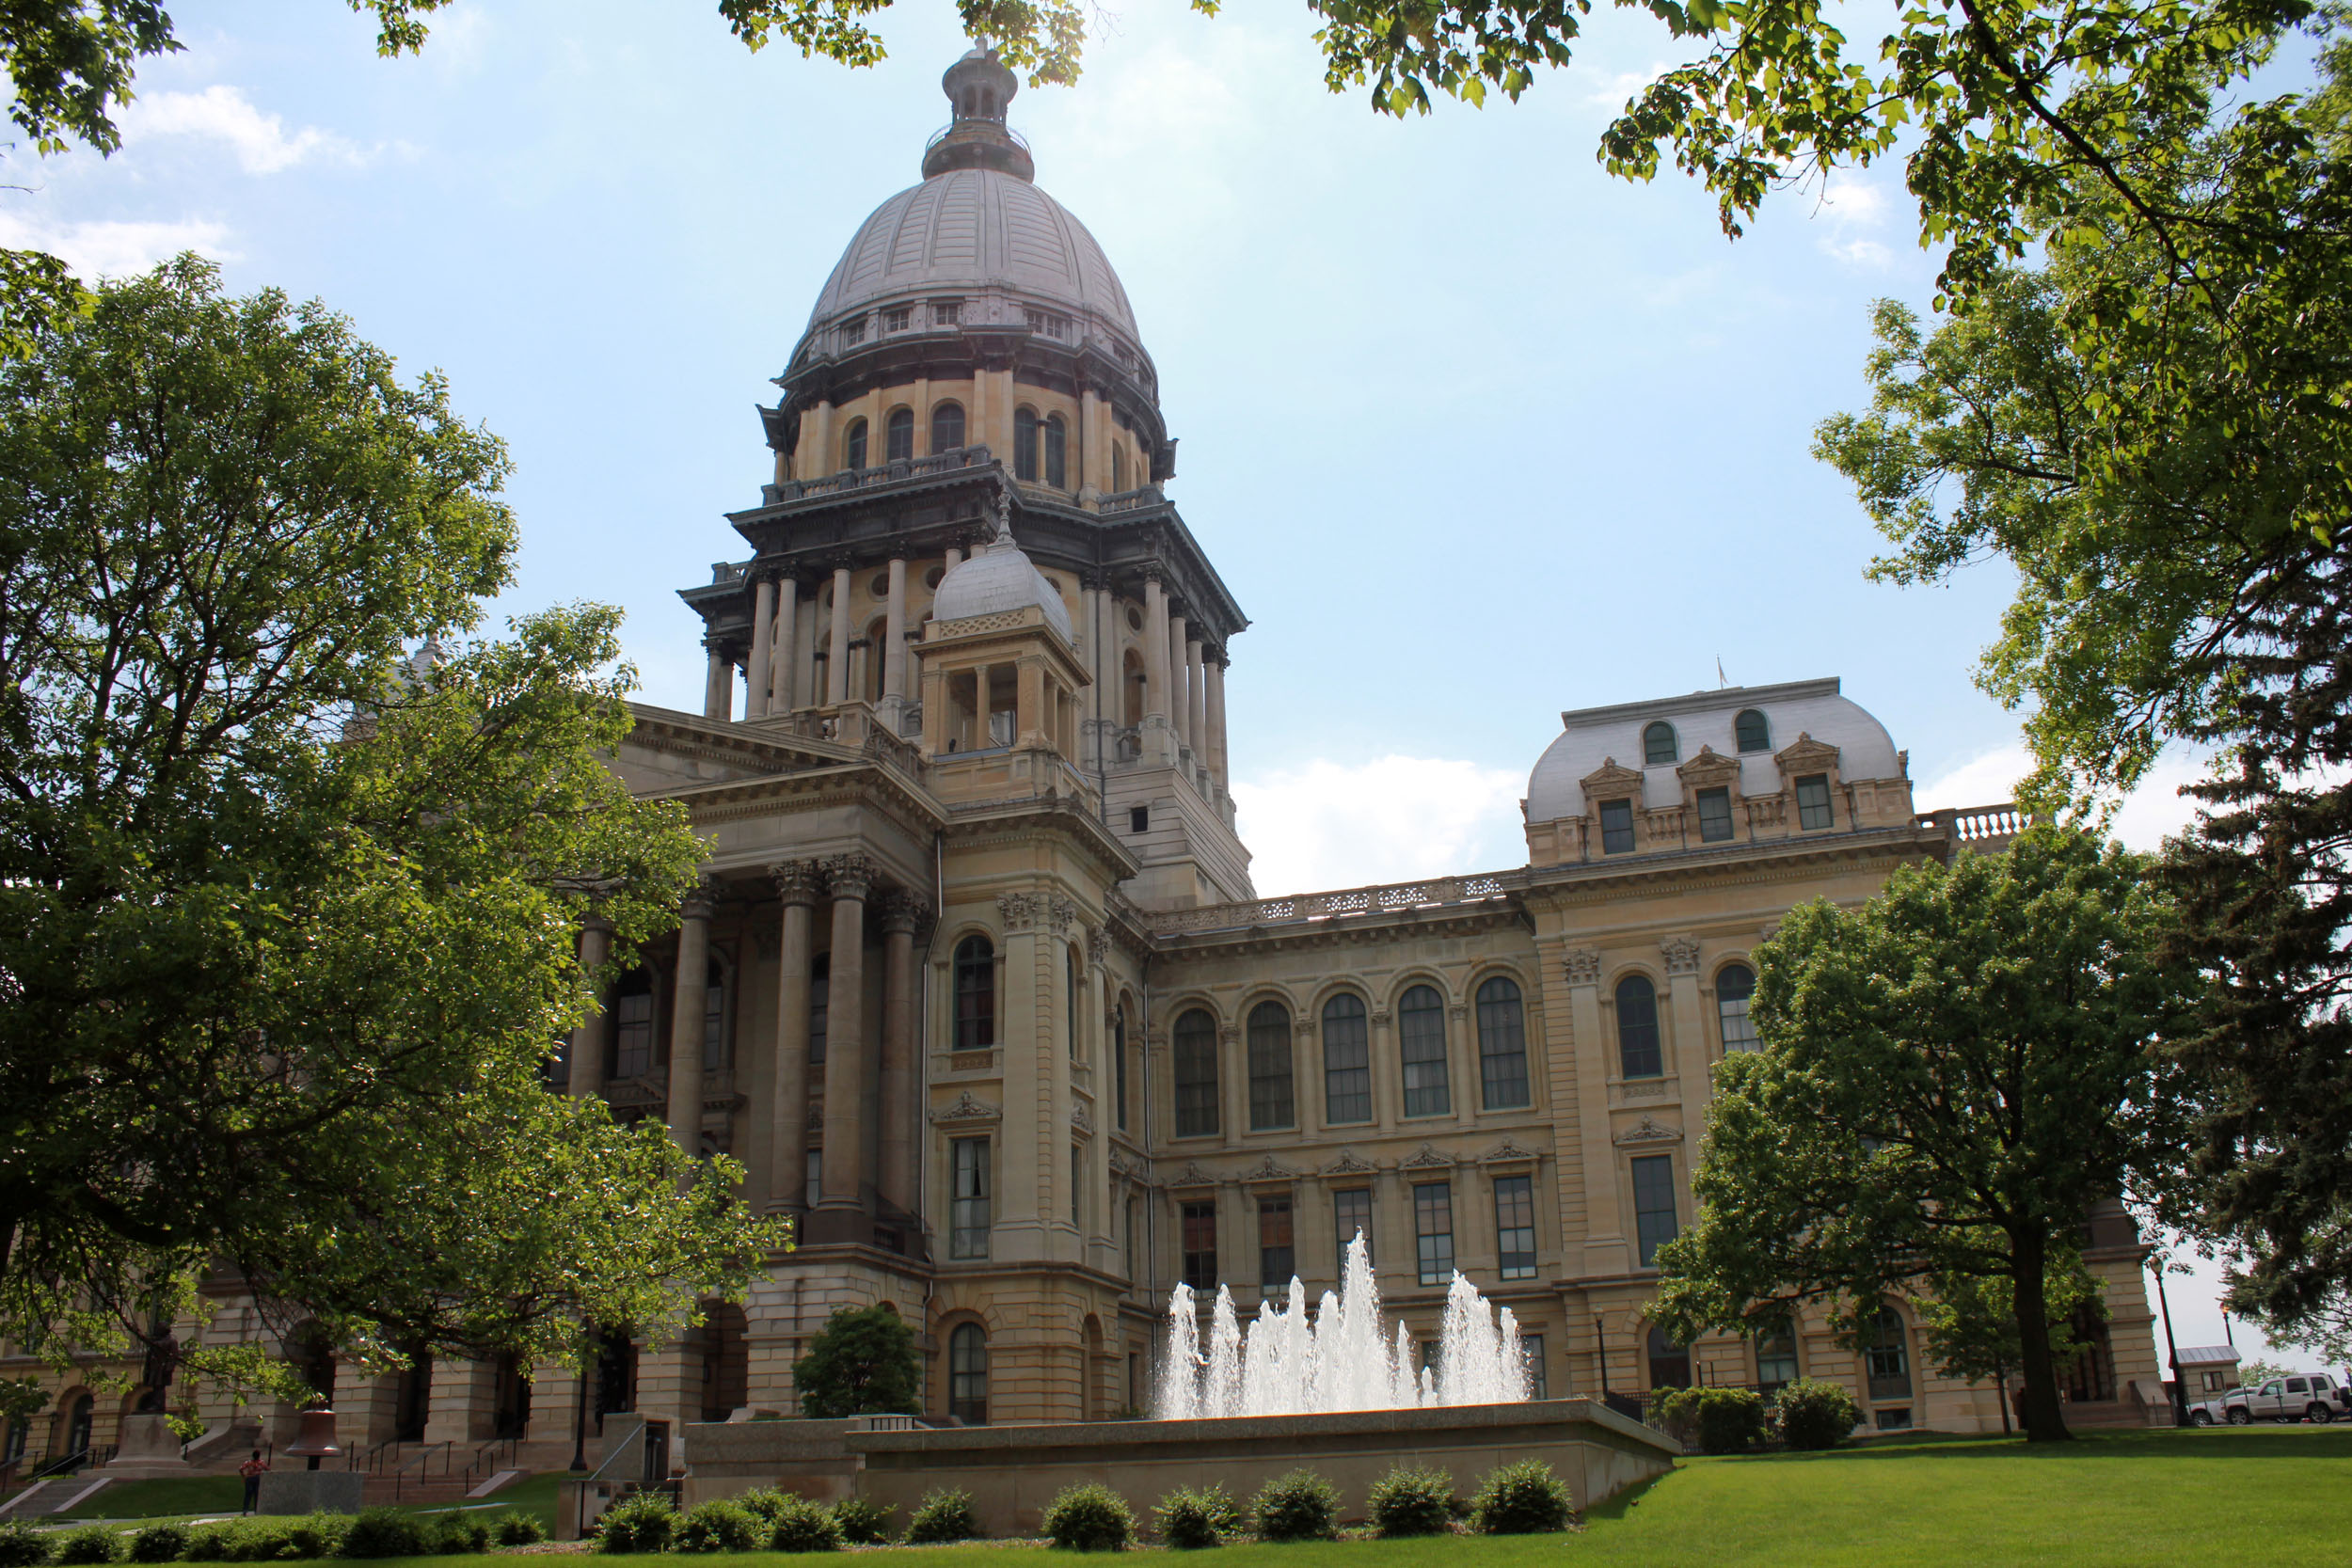 Chicago Rep's Bill Would Allow Illinoisans to Sue Those Causing Unwanted Pregnancies